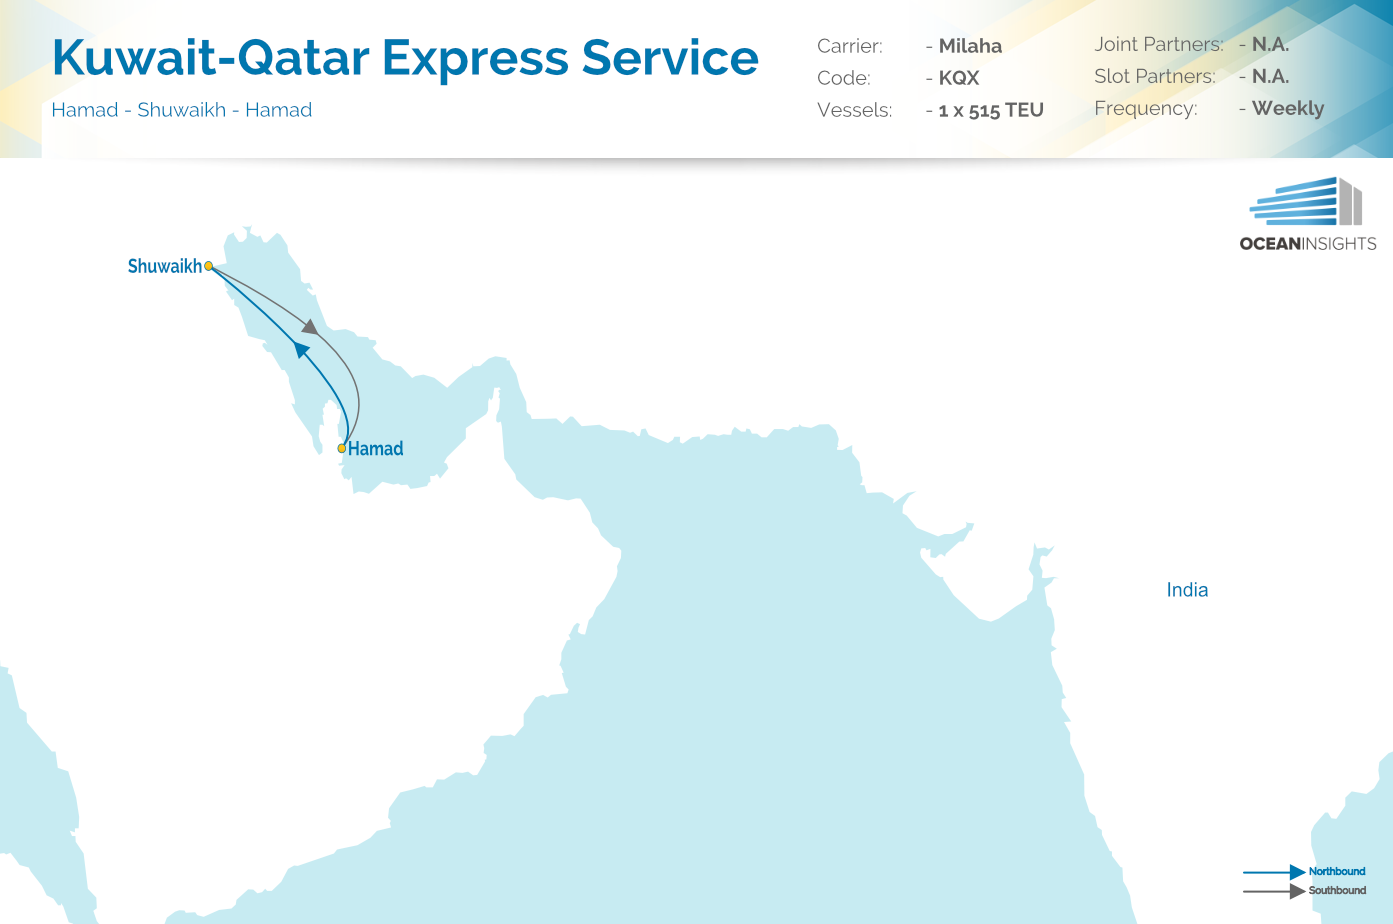 Milaha Direct Container Service Kqx Between Qatar And Kuwait Launched